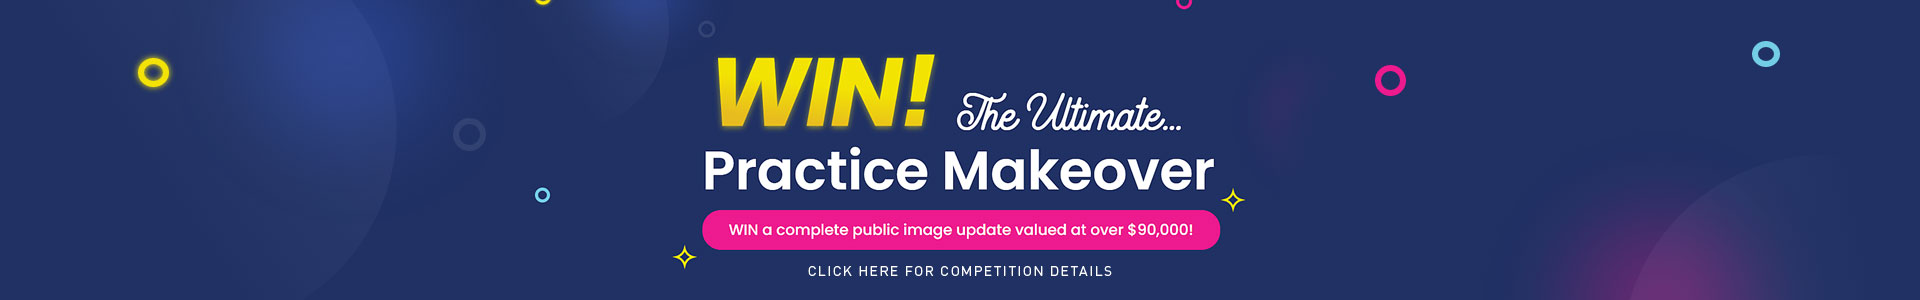 Win the Ultimate Practice Makeover